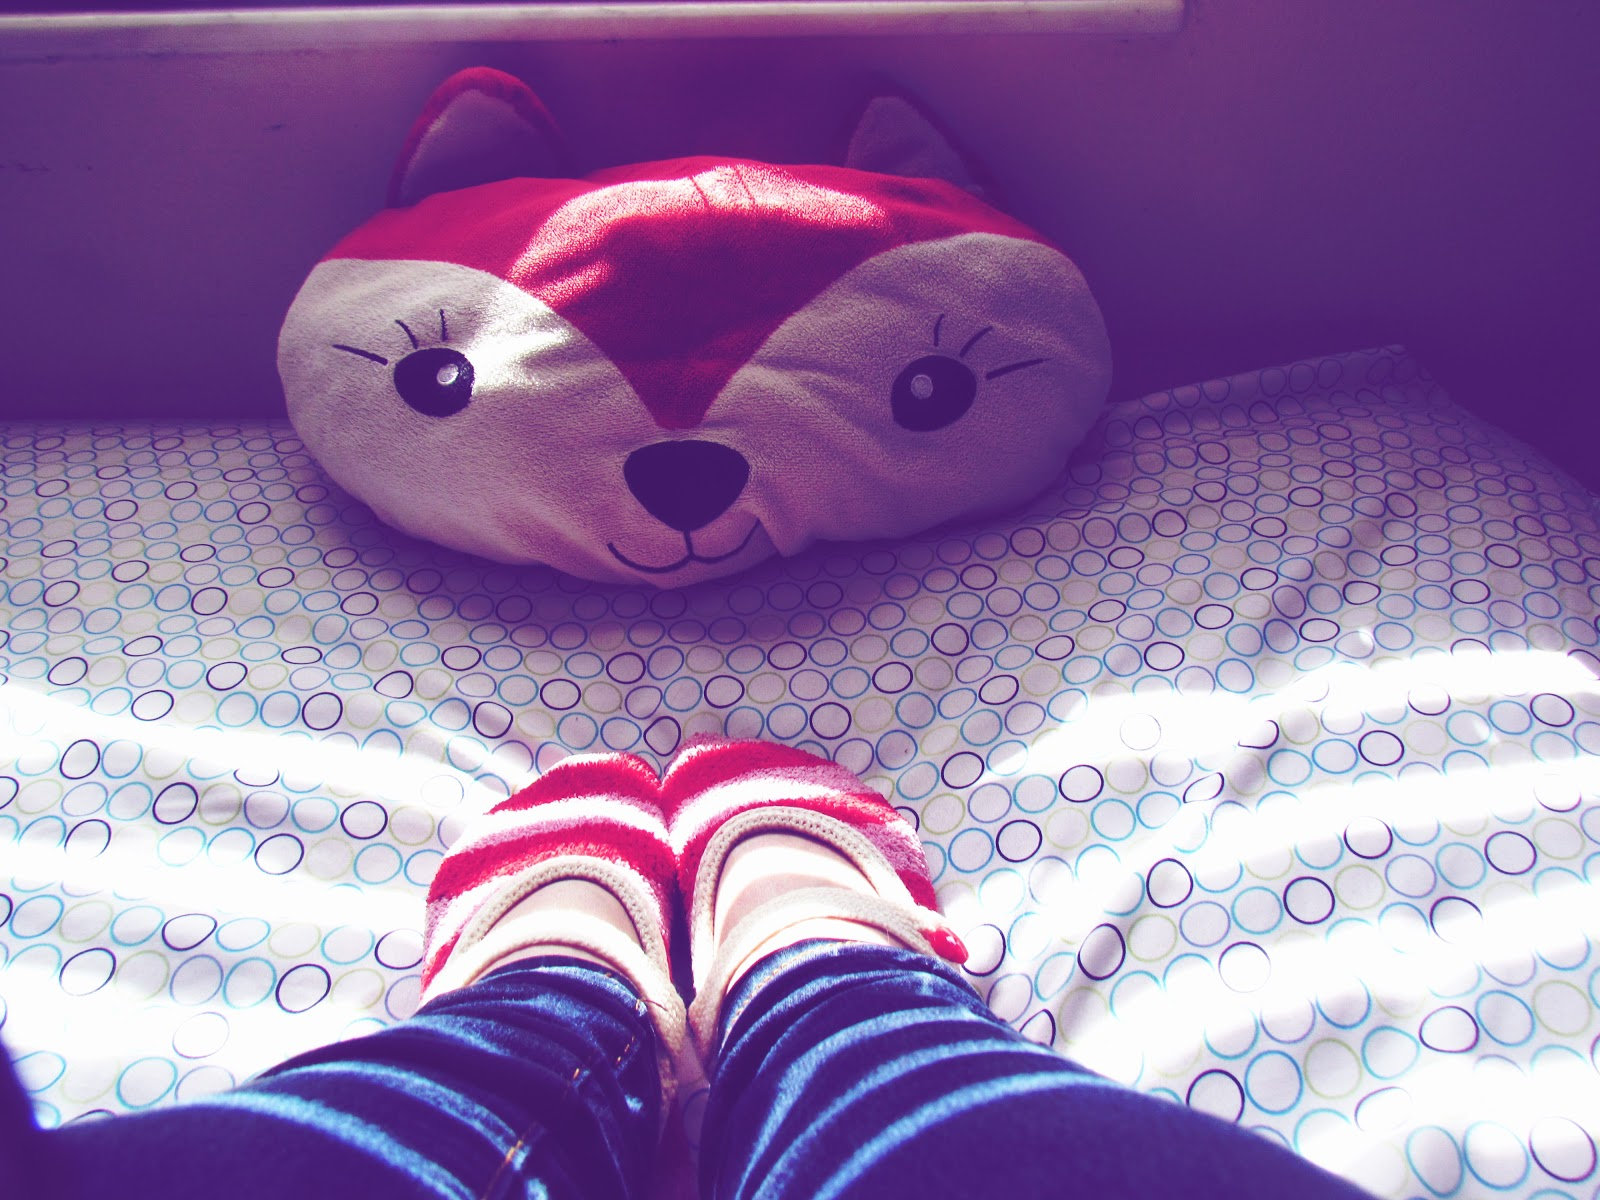 A Fox Pillow and a Woman Wearing Candy Cane Striped Fuzzy Socks for the Winter Months in Florida